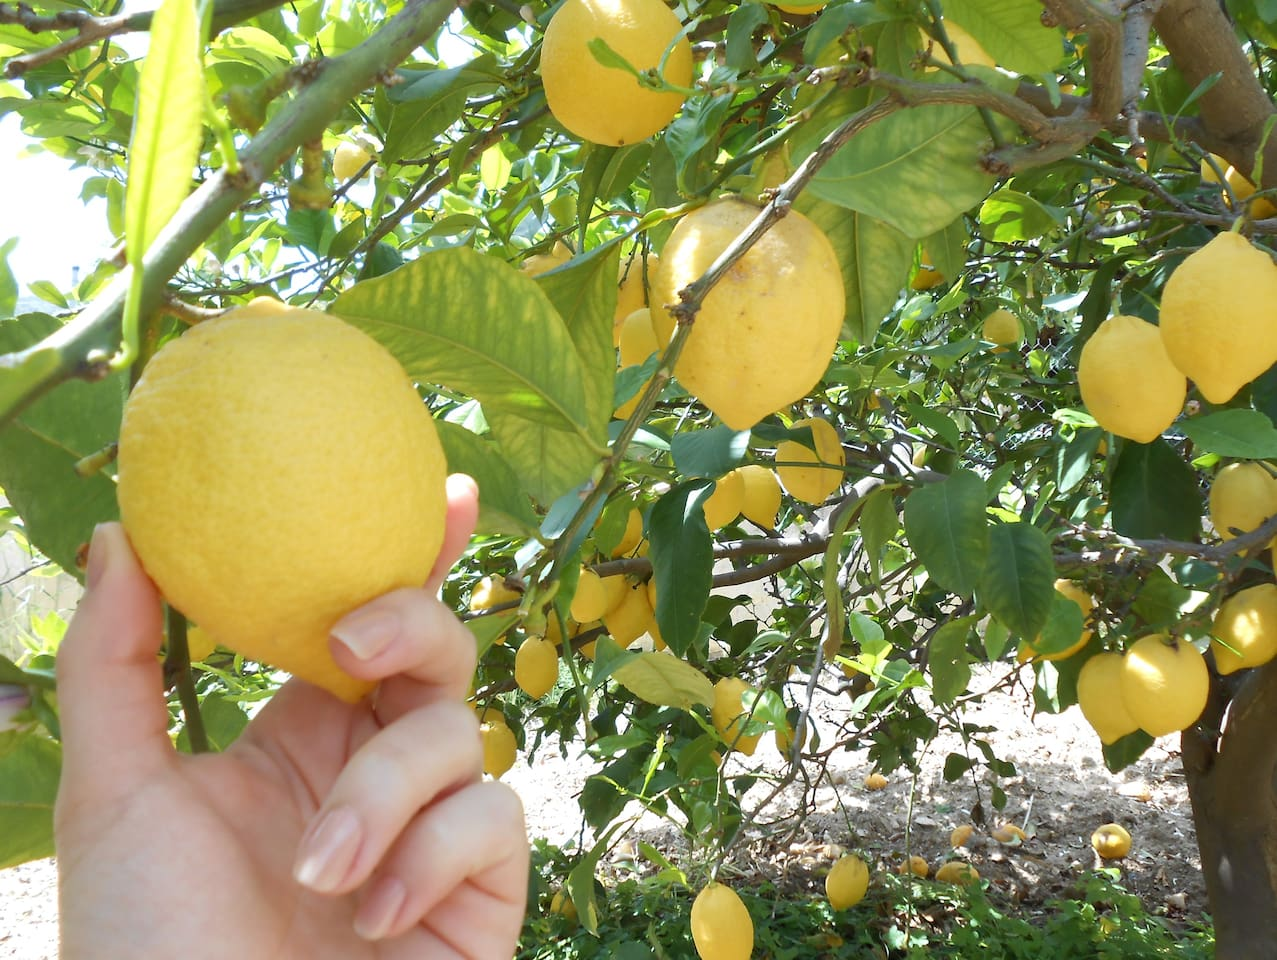 Try our fresh lemons from the garden, in a juice or tea!